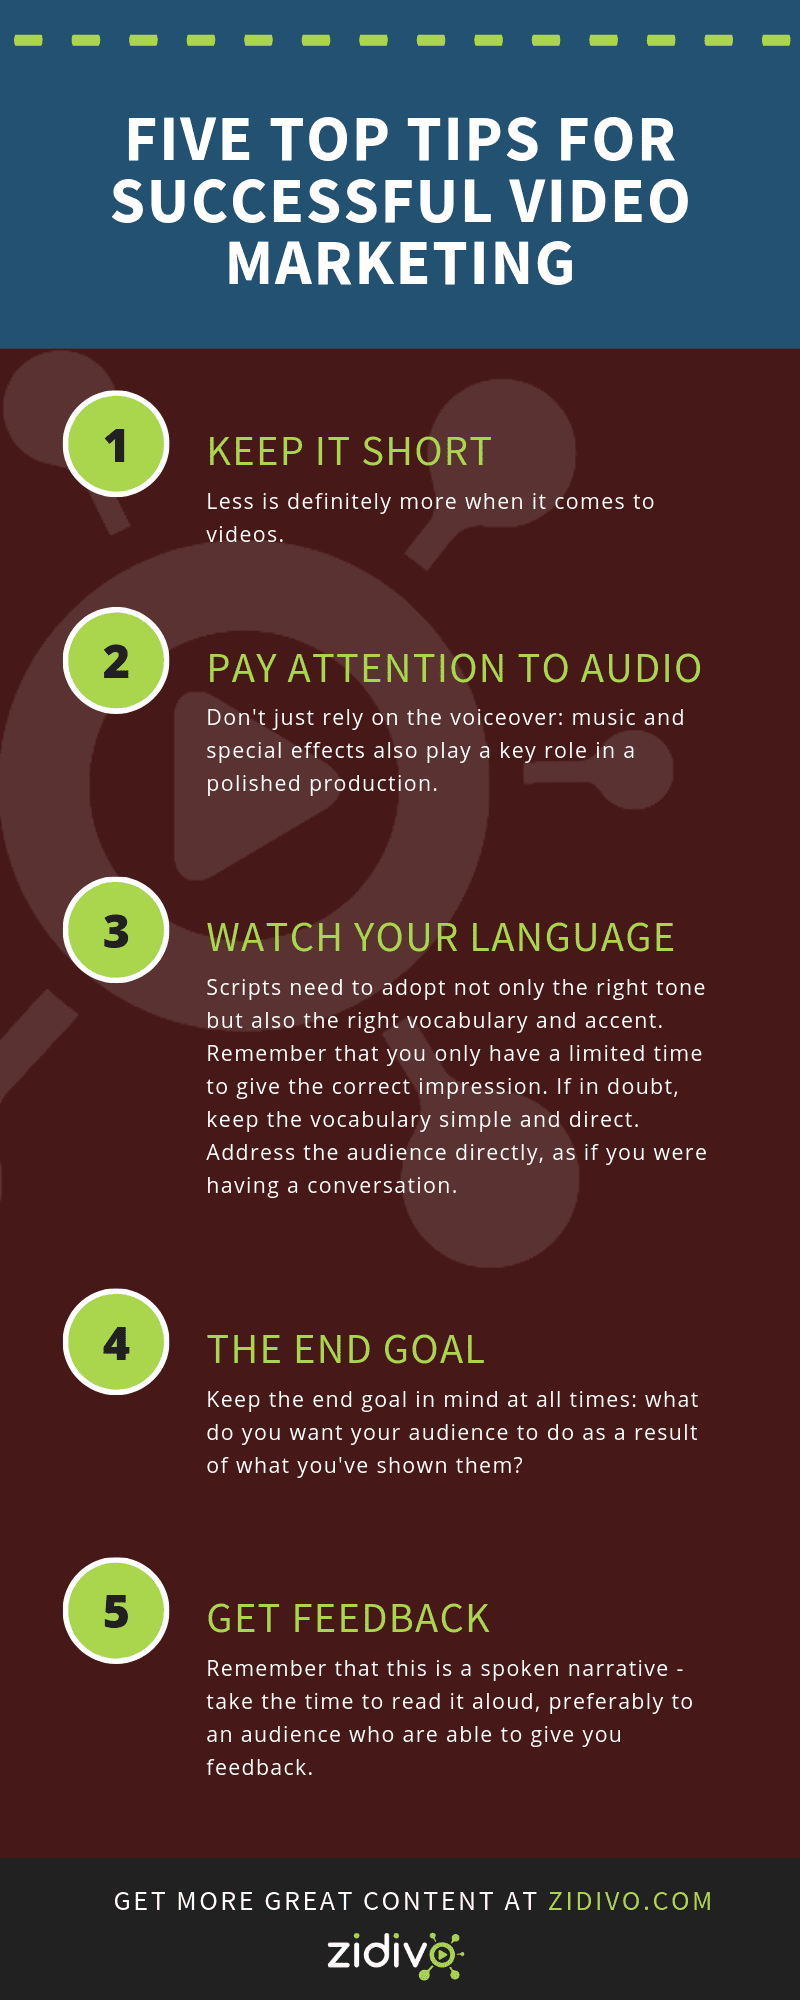 [Infographic] Five Top Tips for Successful Video Marketing